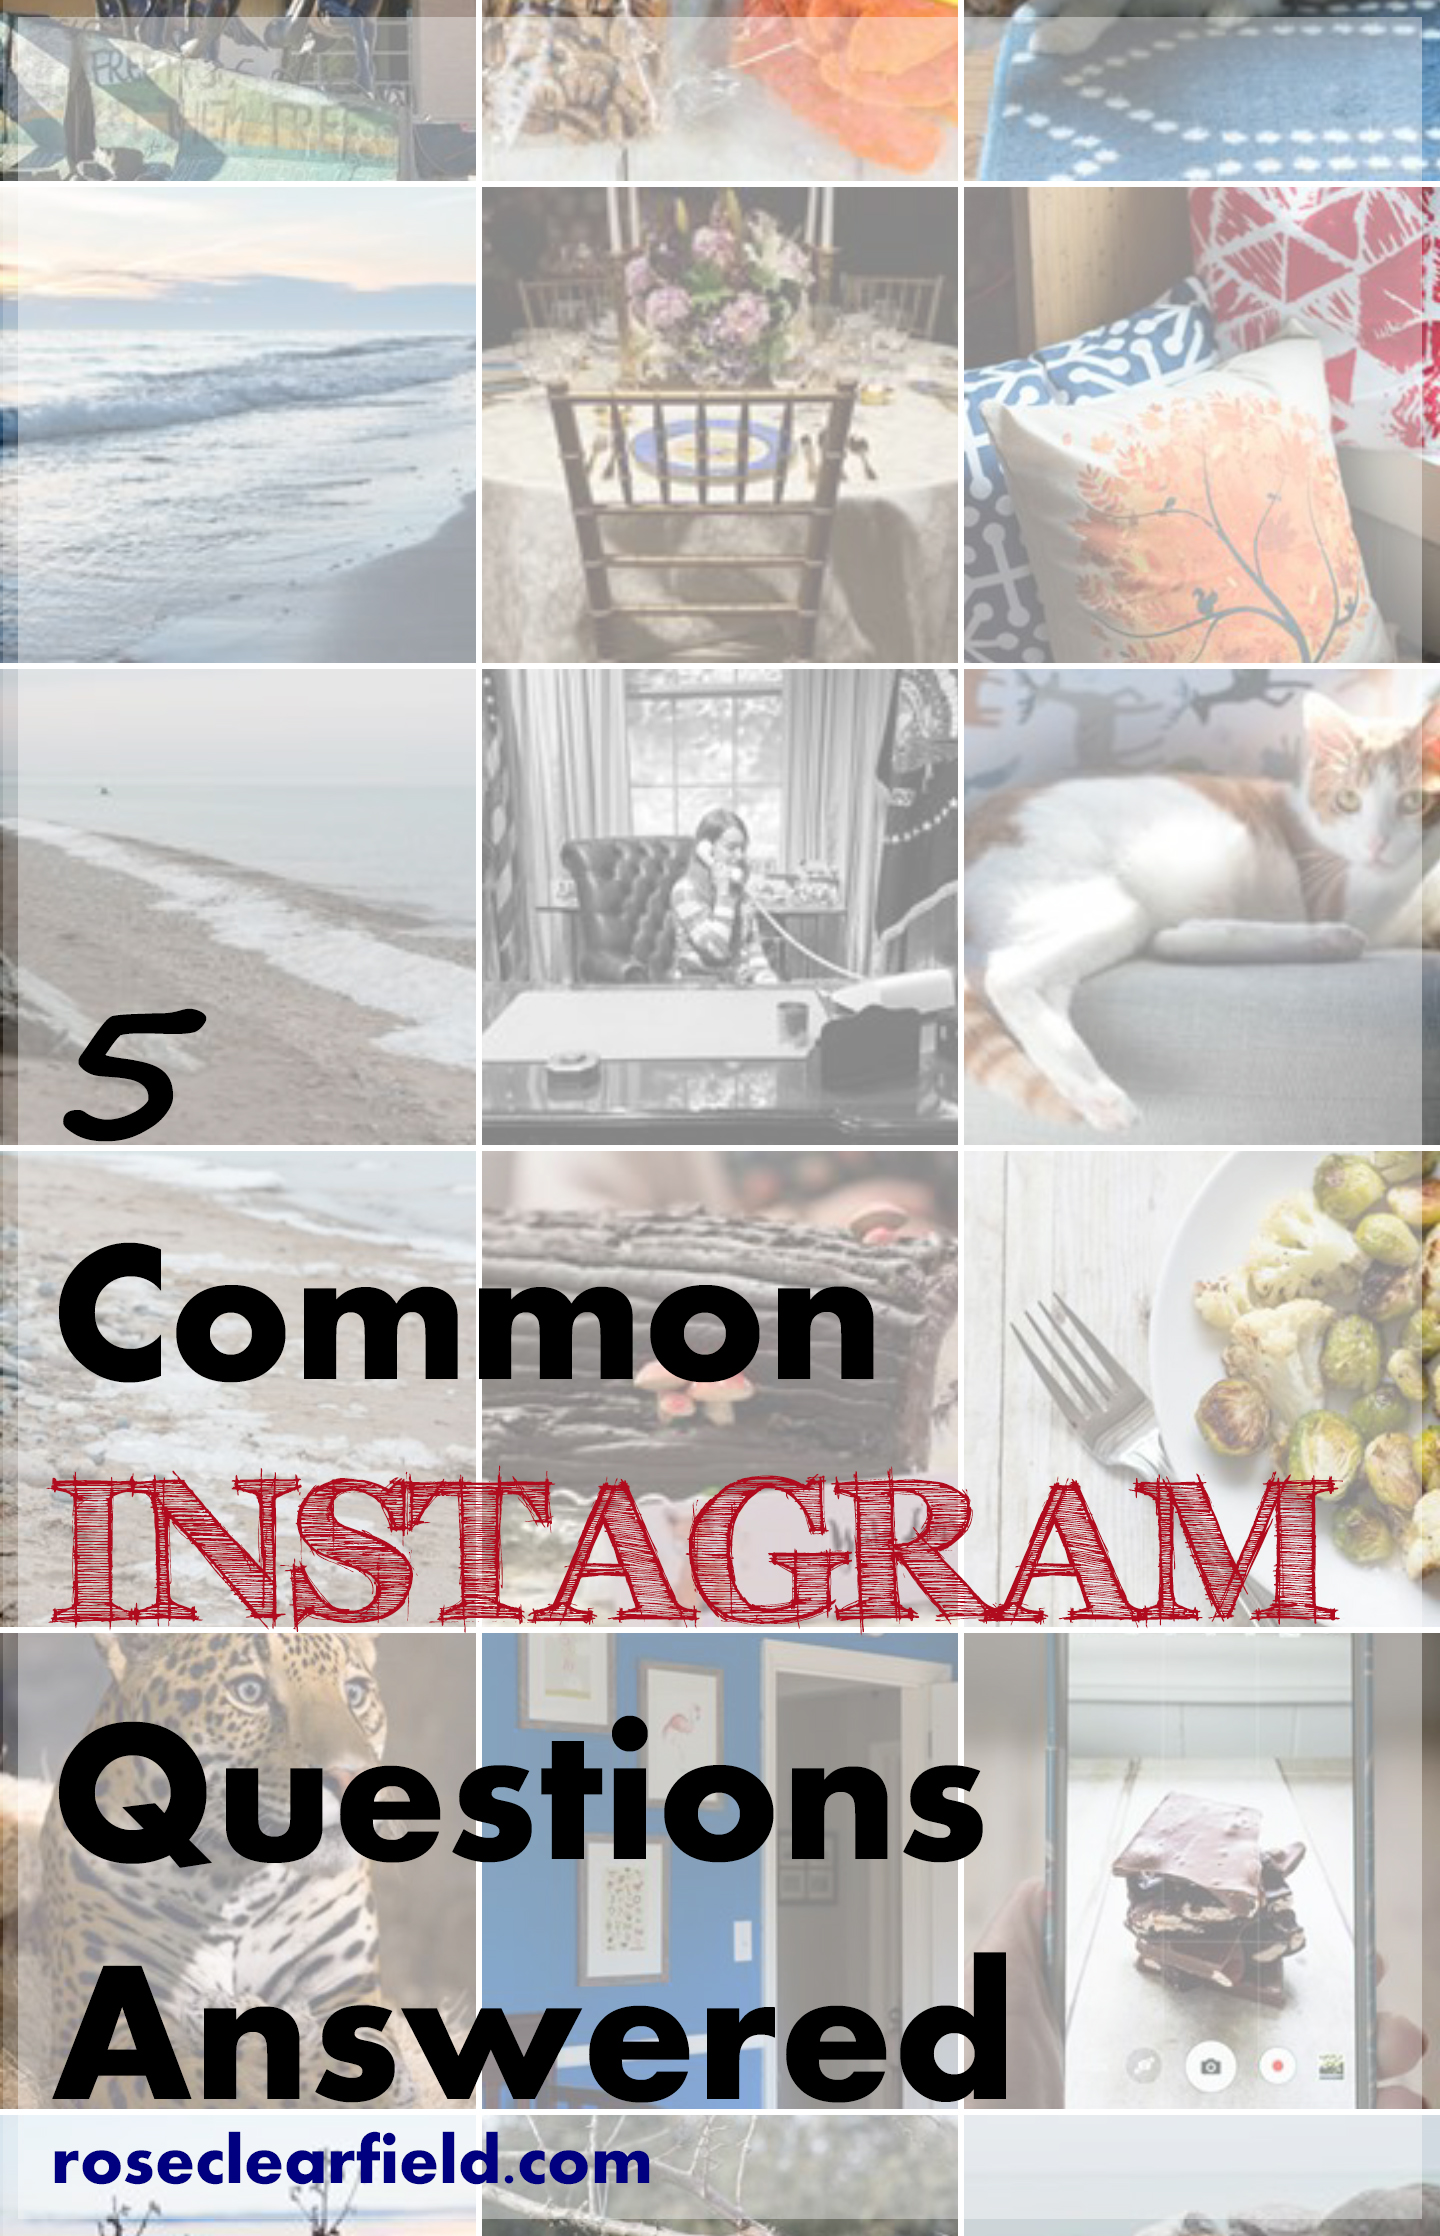 5 Common Instagram Questions Answered | http://www.roseclearfield.com